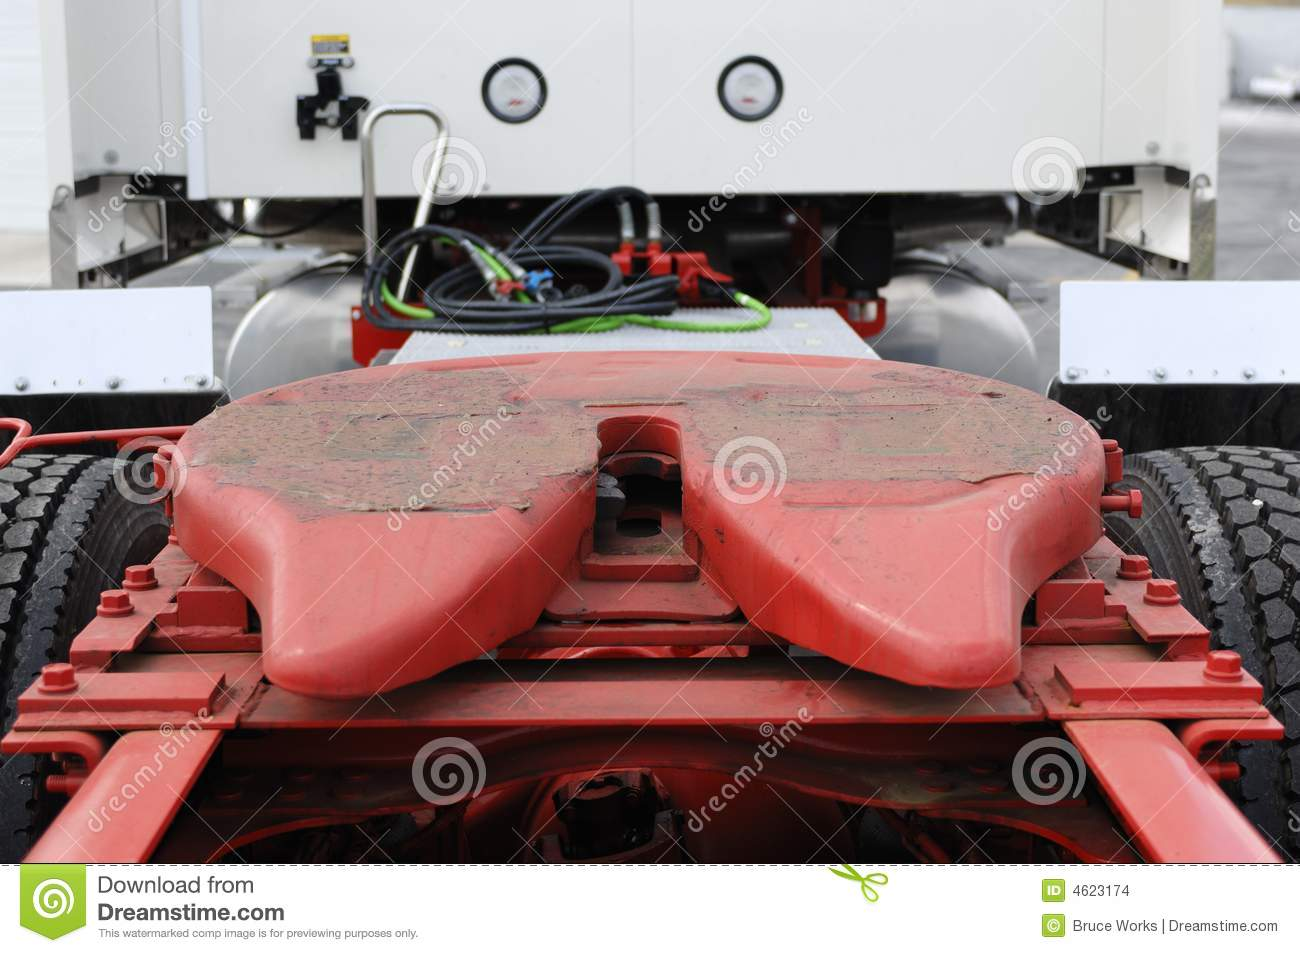 Truck Trailer Hitch >> Truck Trailer Hitch Stock Photo Image Of Tire Industry